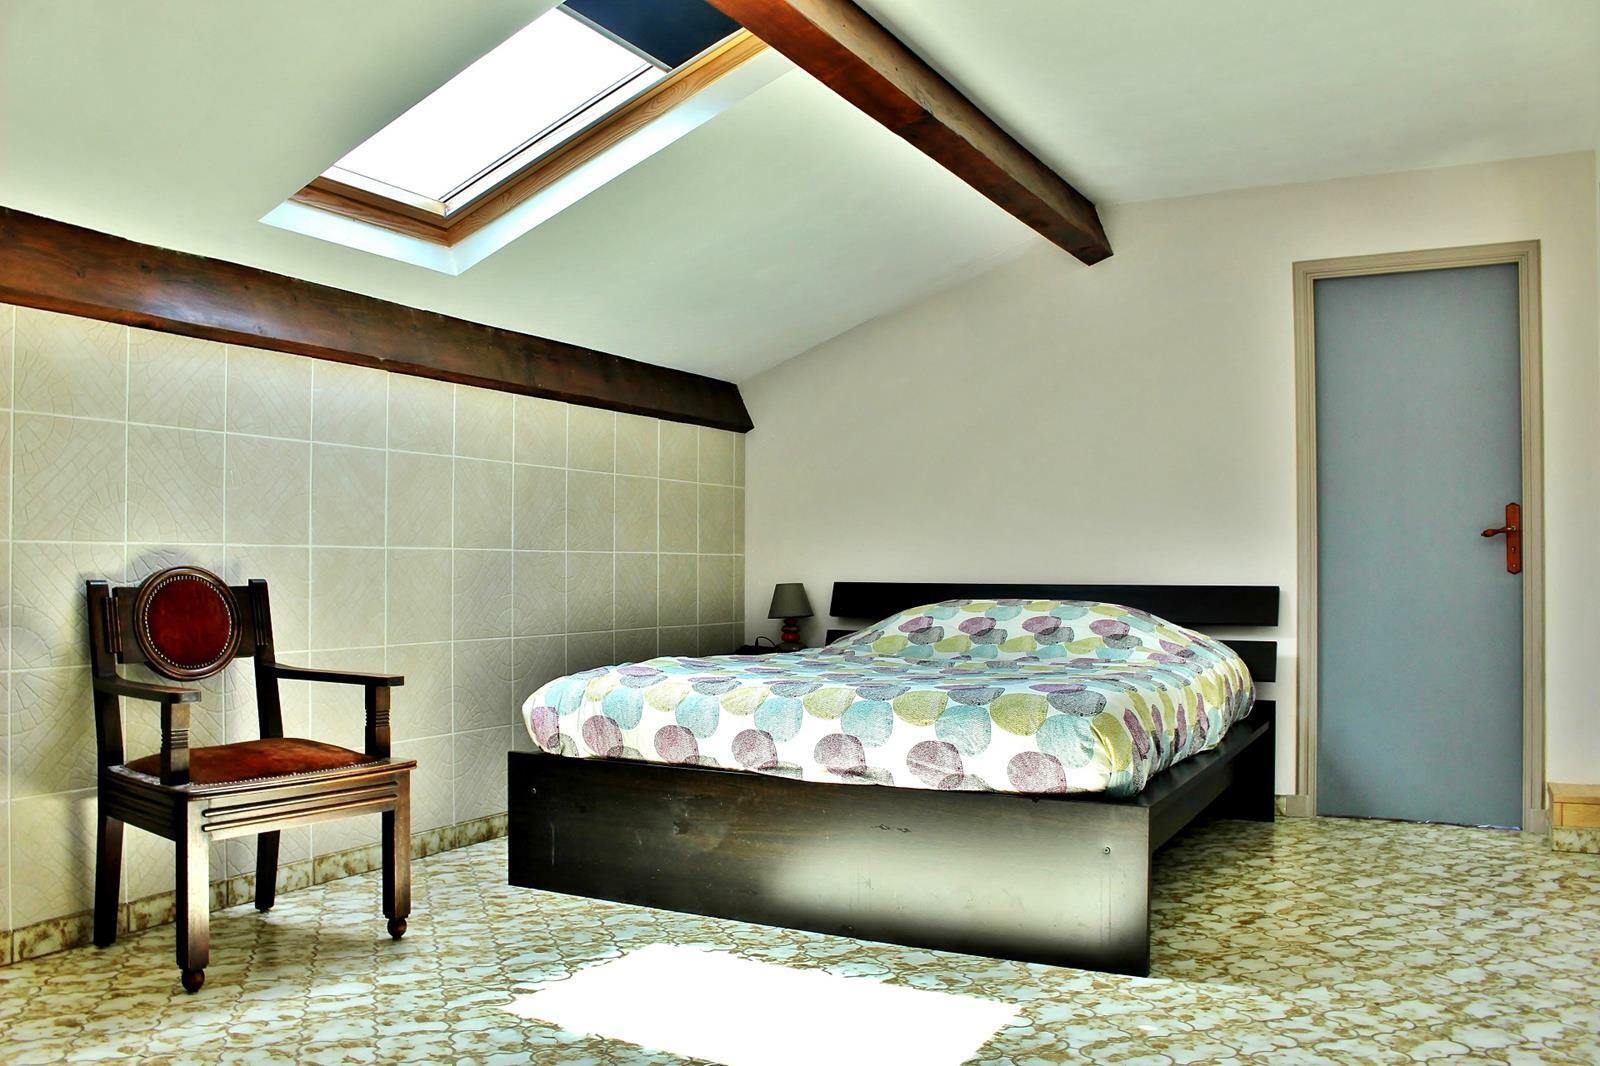 Bed Breakfast Agréable Et Convivial